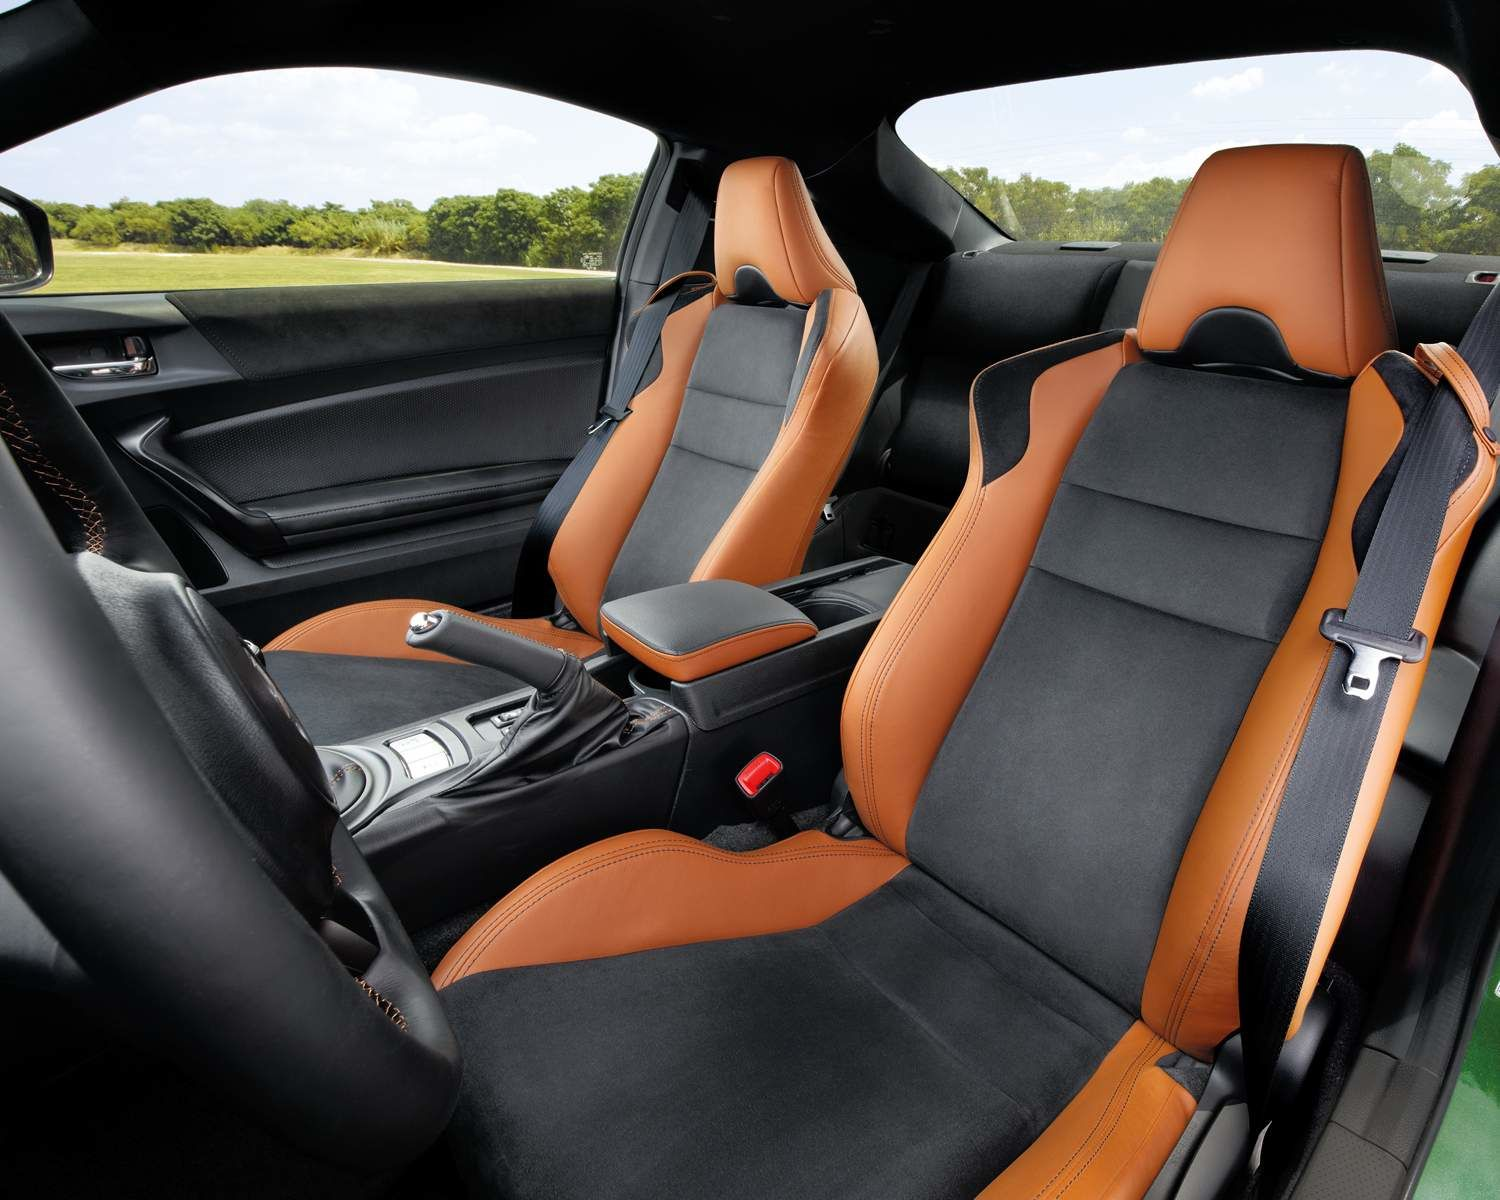 Toyota 86 Interior Front Seats show in Tan/Black